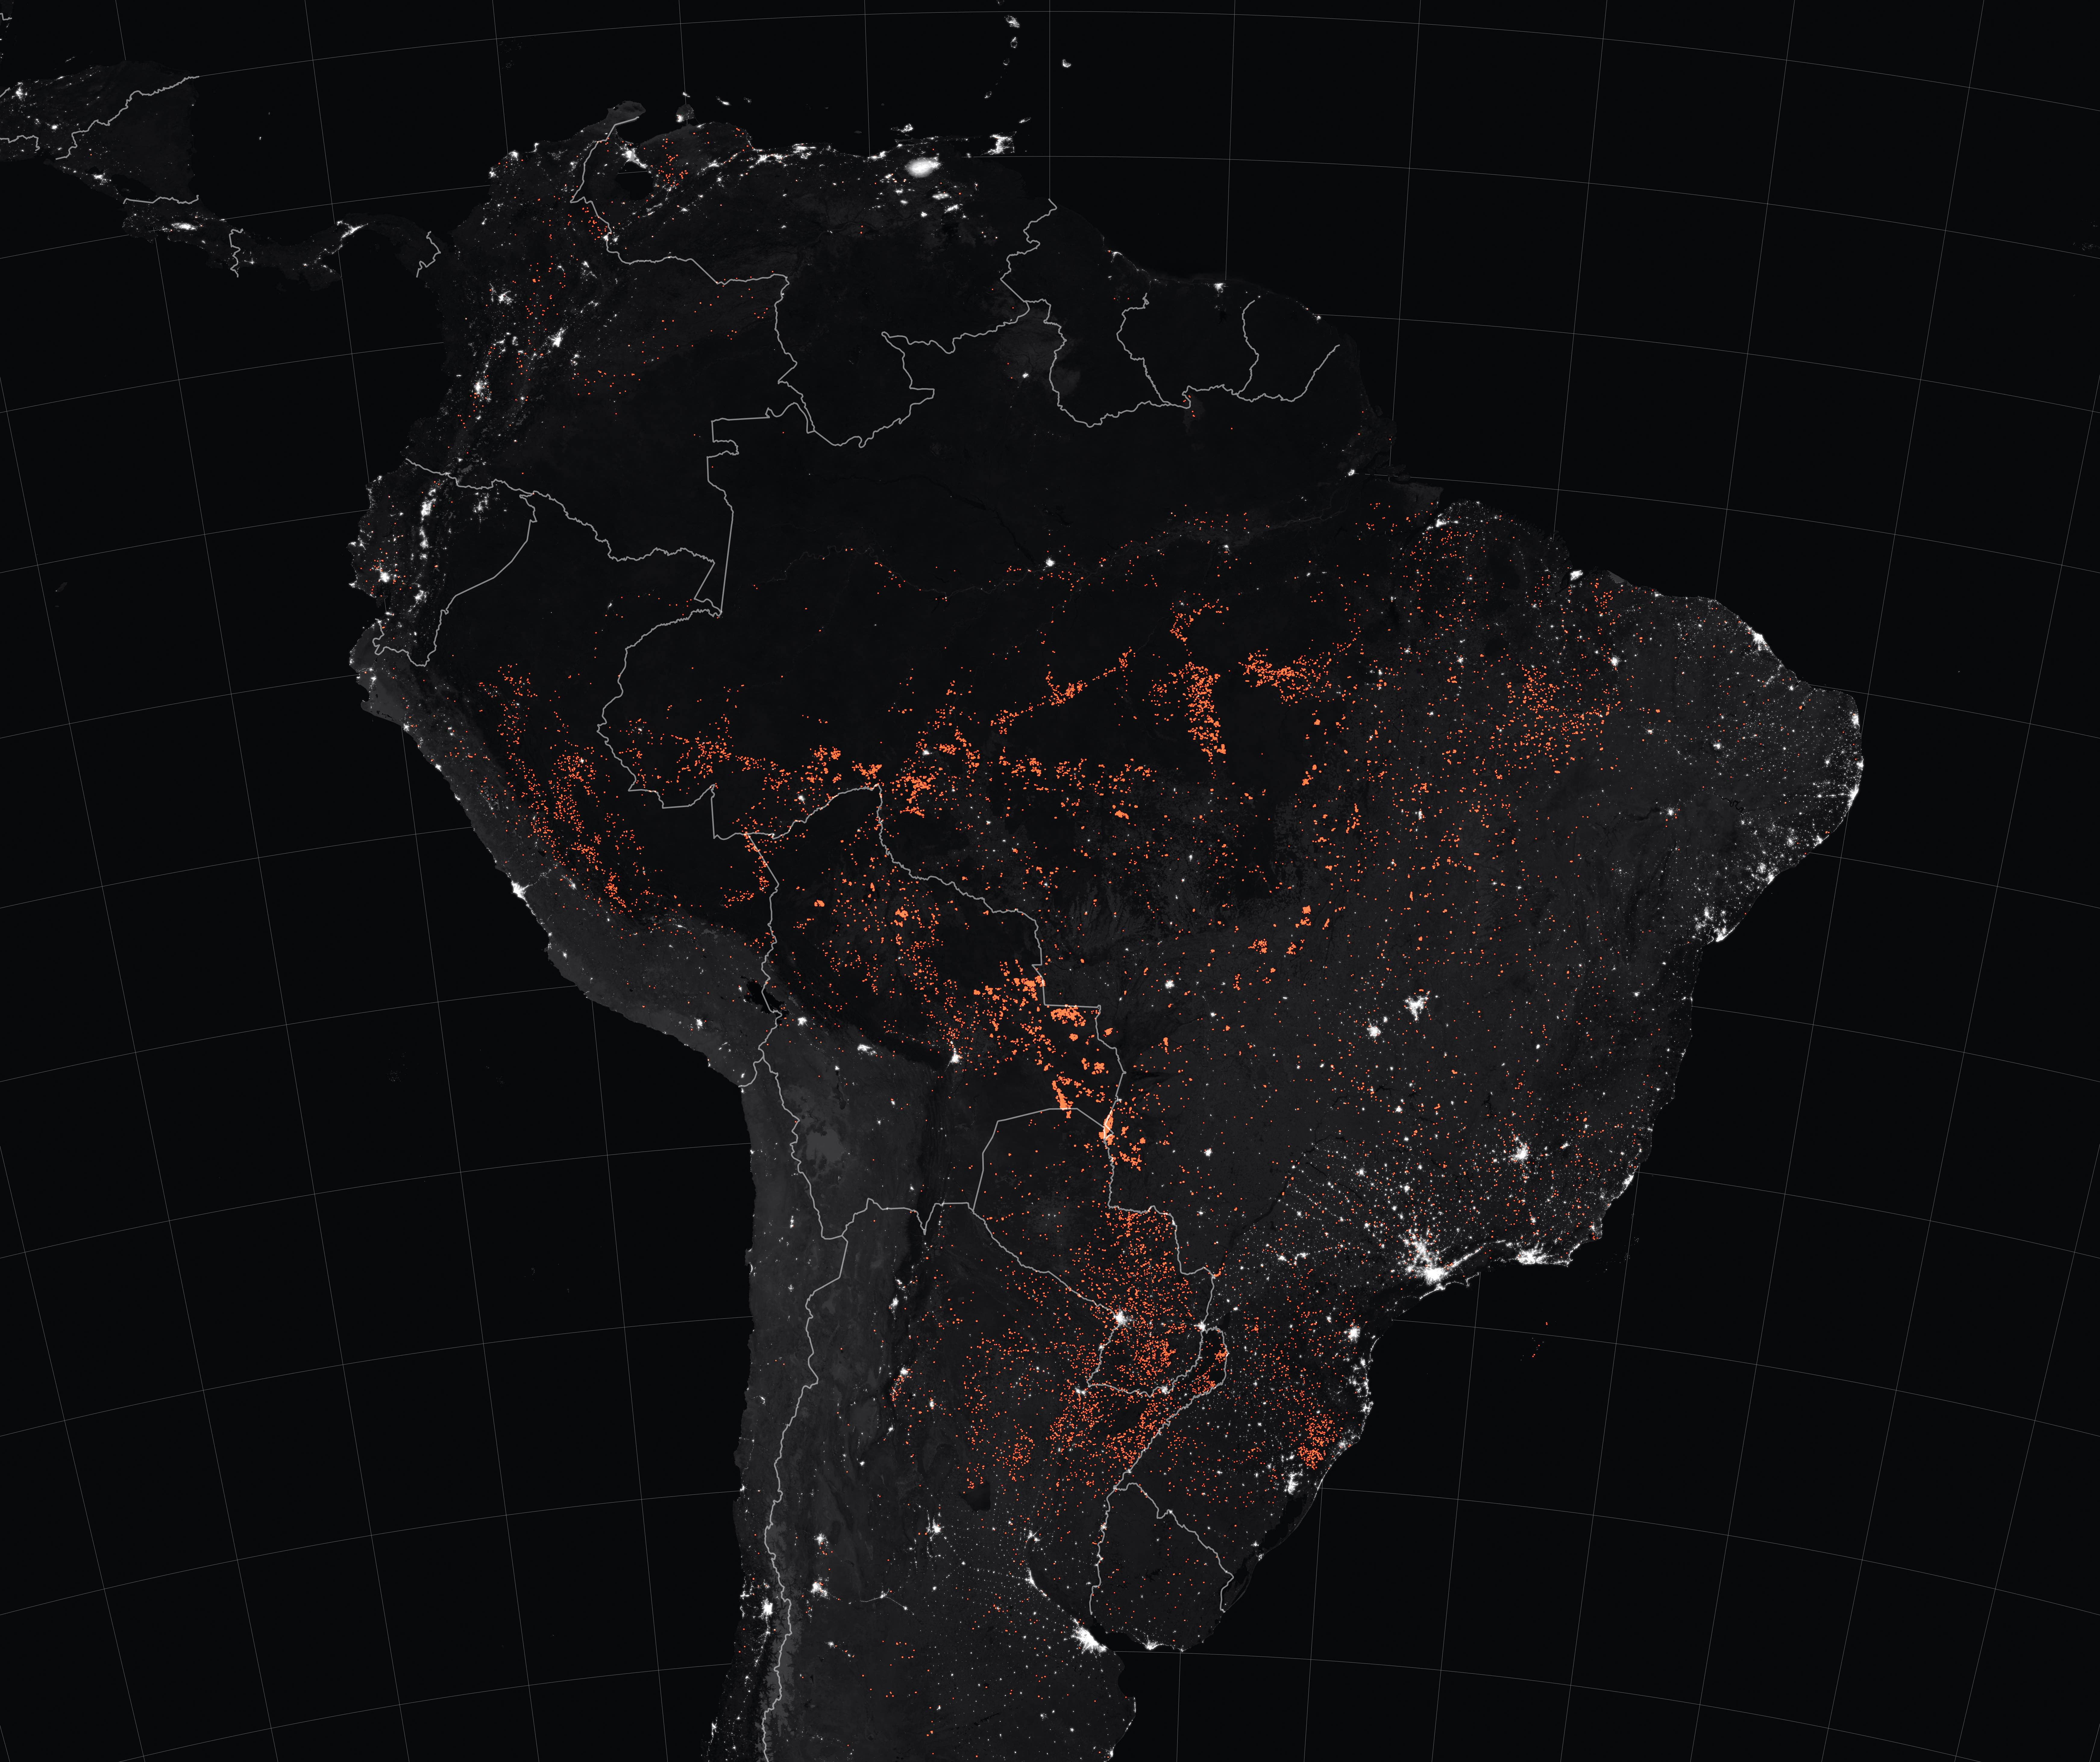 South America Fires